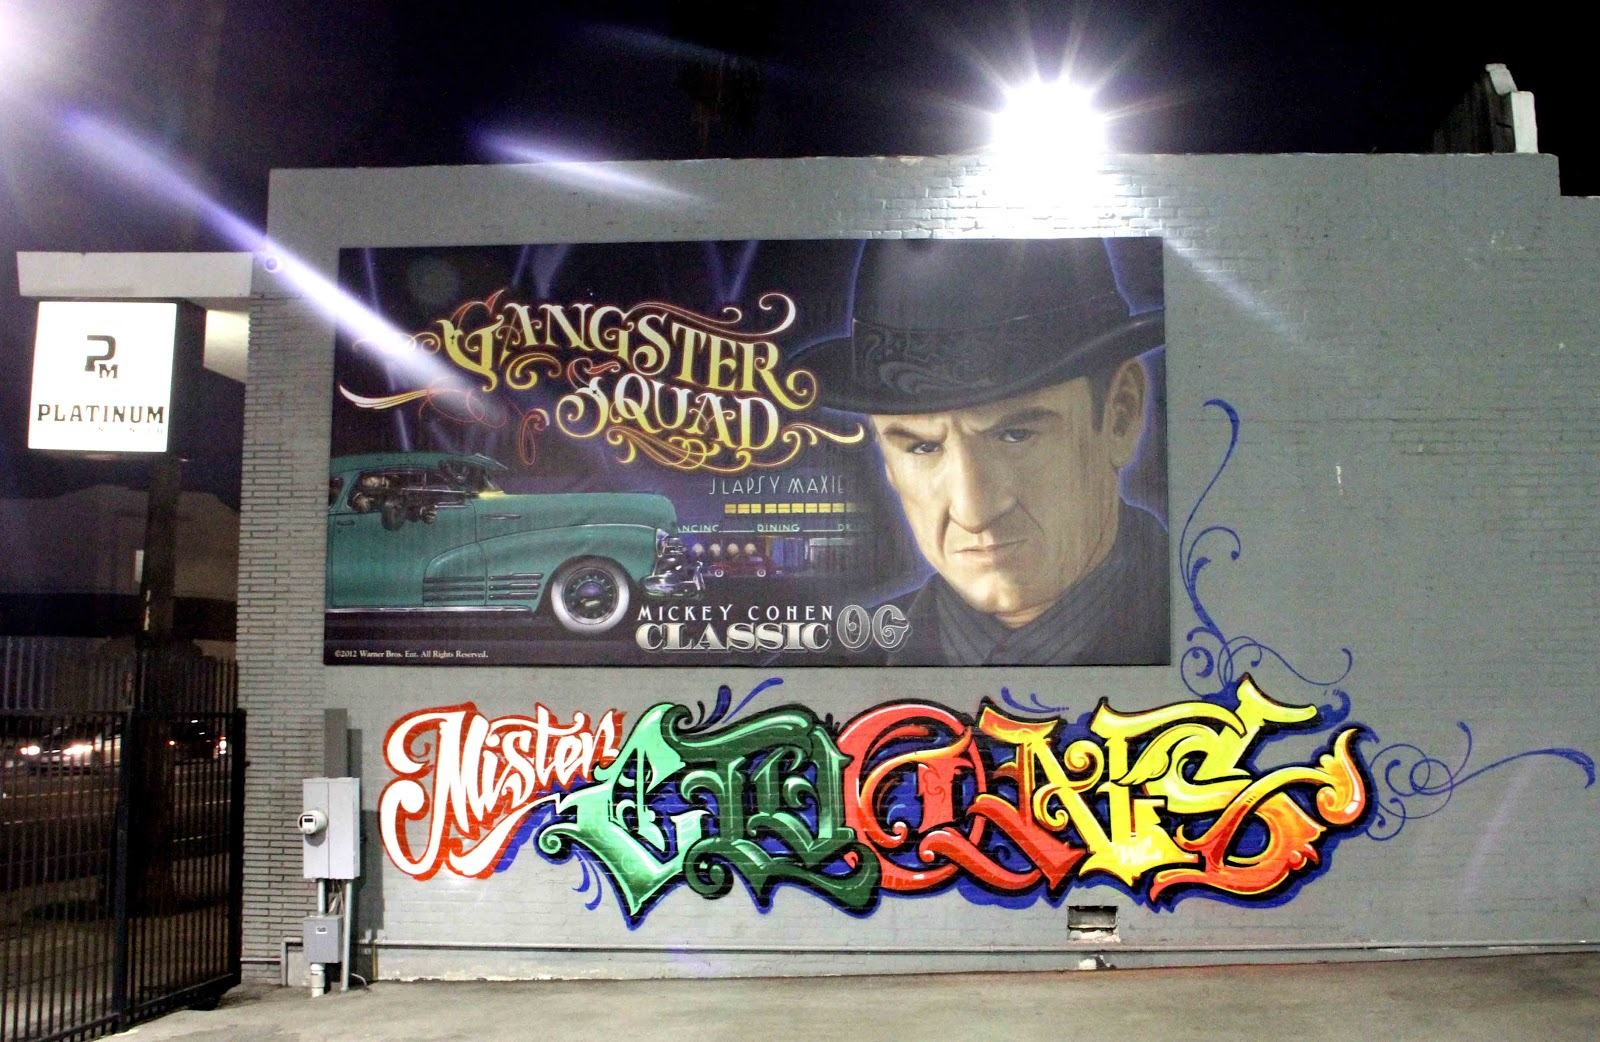 > Mister Cartoon Unveils Custom Billboard For Upcoming 'Gangster Squad' Movie - Photo posted in The TV and Movie Spot | Sign in and leave a comment below!